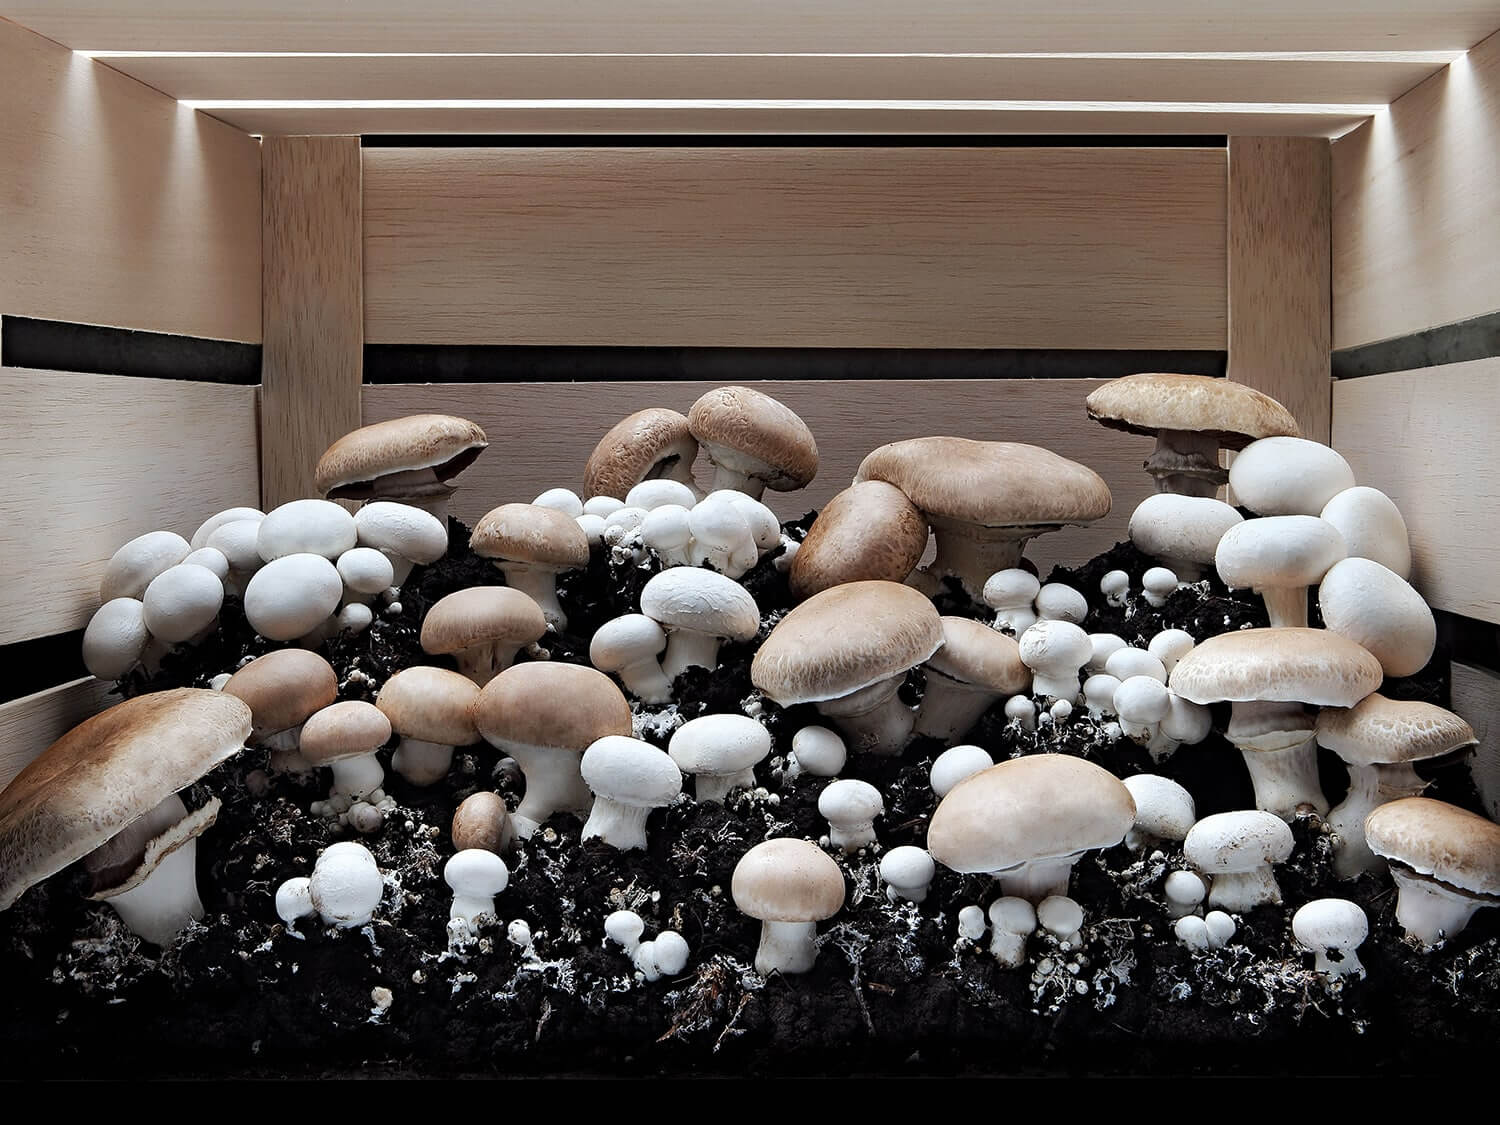 A lot of mushrooms growing in a wooden box. Photo by Elsa Young.